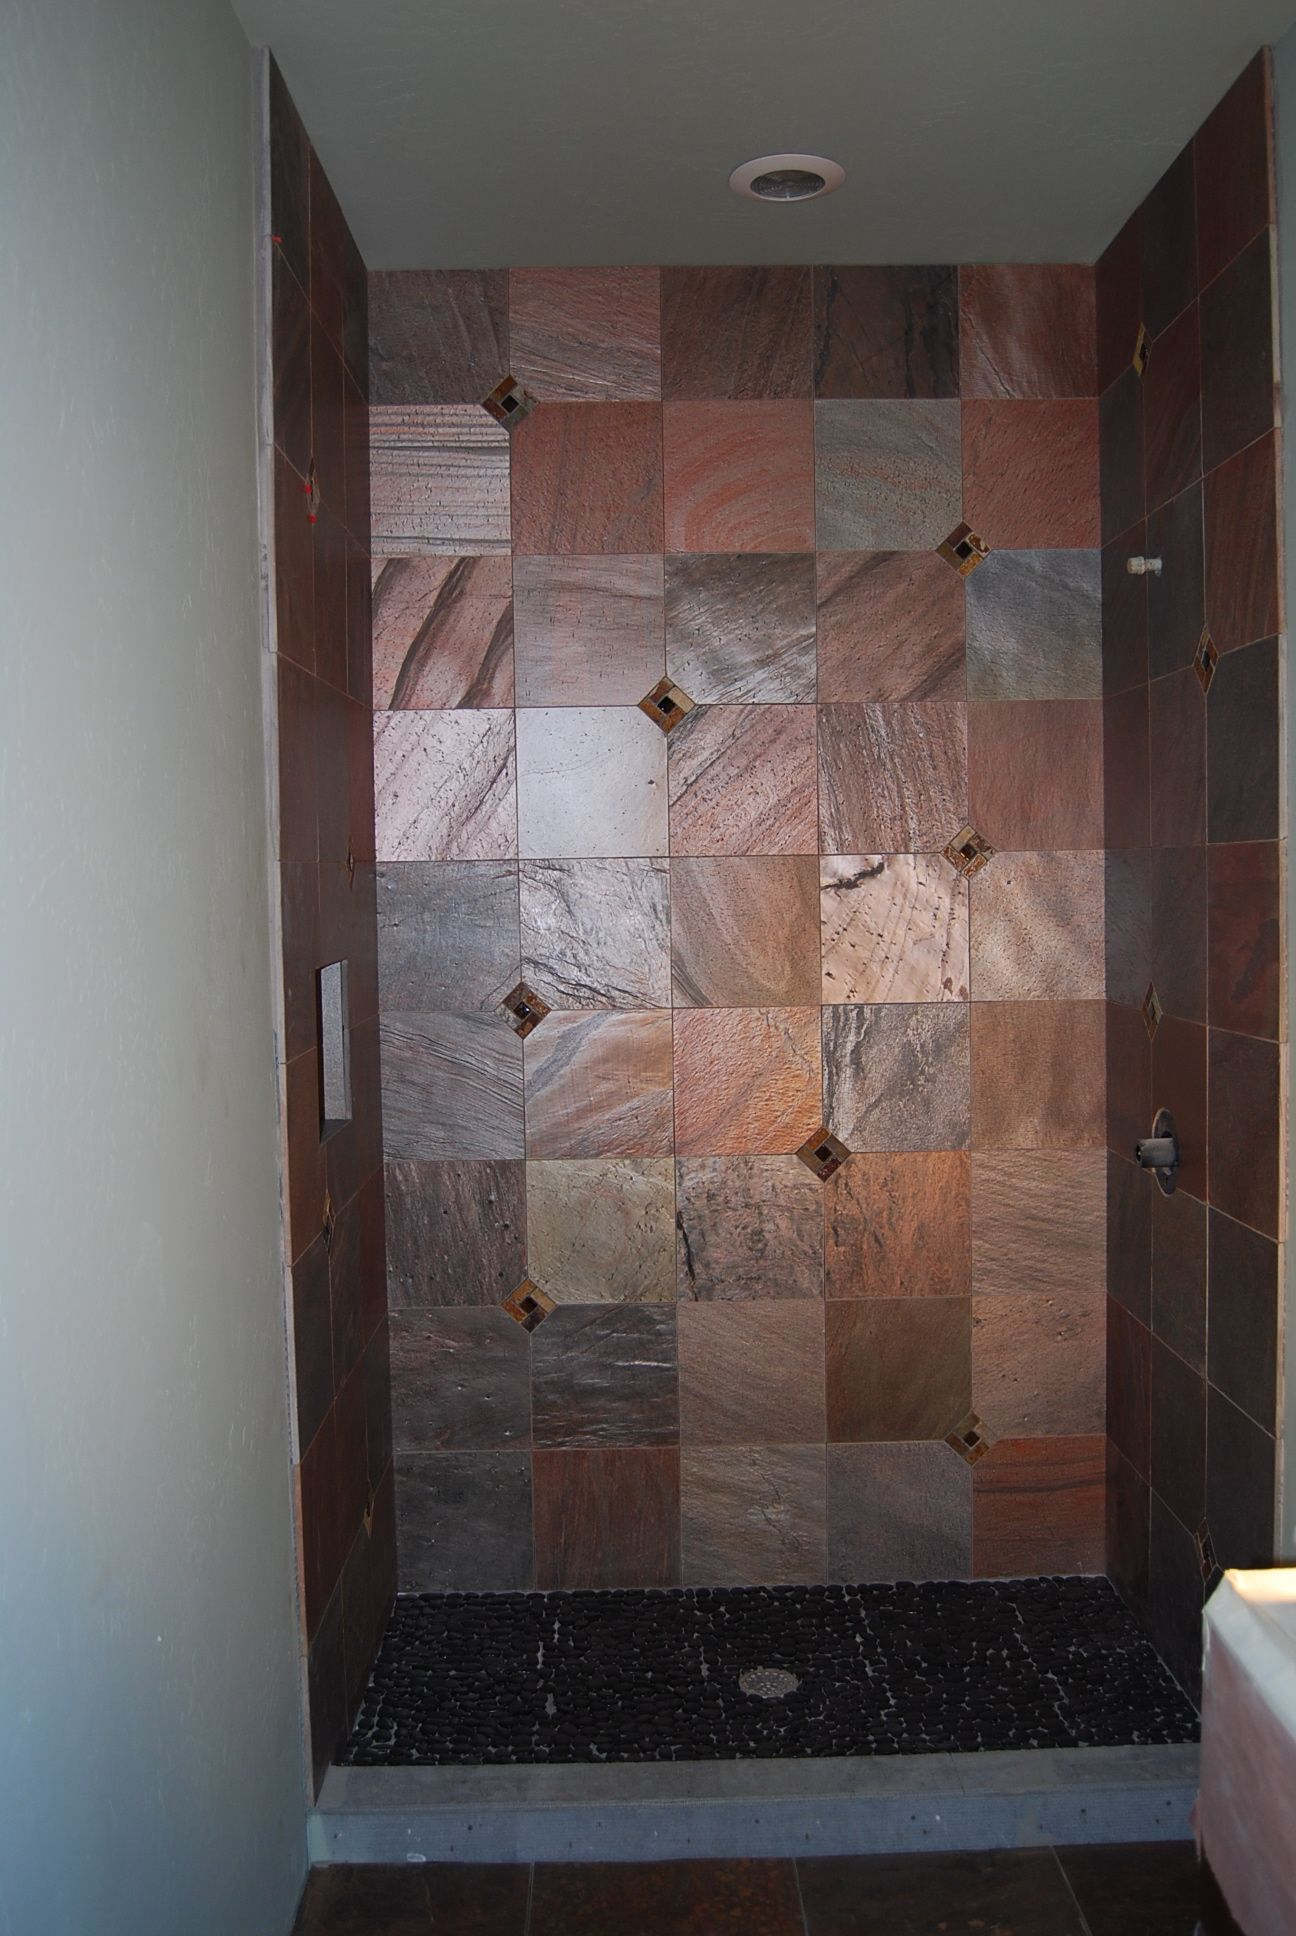 Bathroom Tile Inserts - A shower i designed with copper quartzite field tile slate pinwheel inserts with